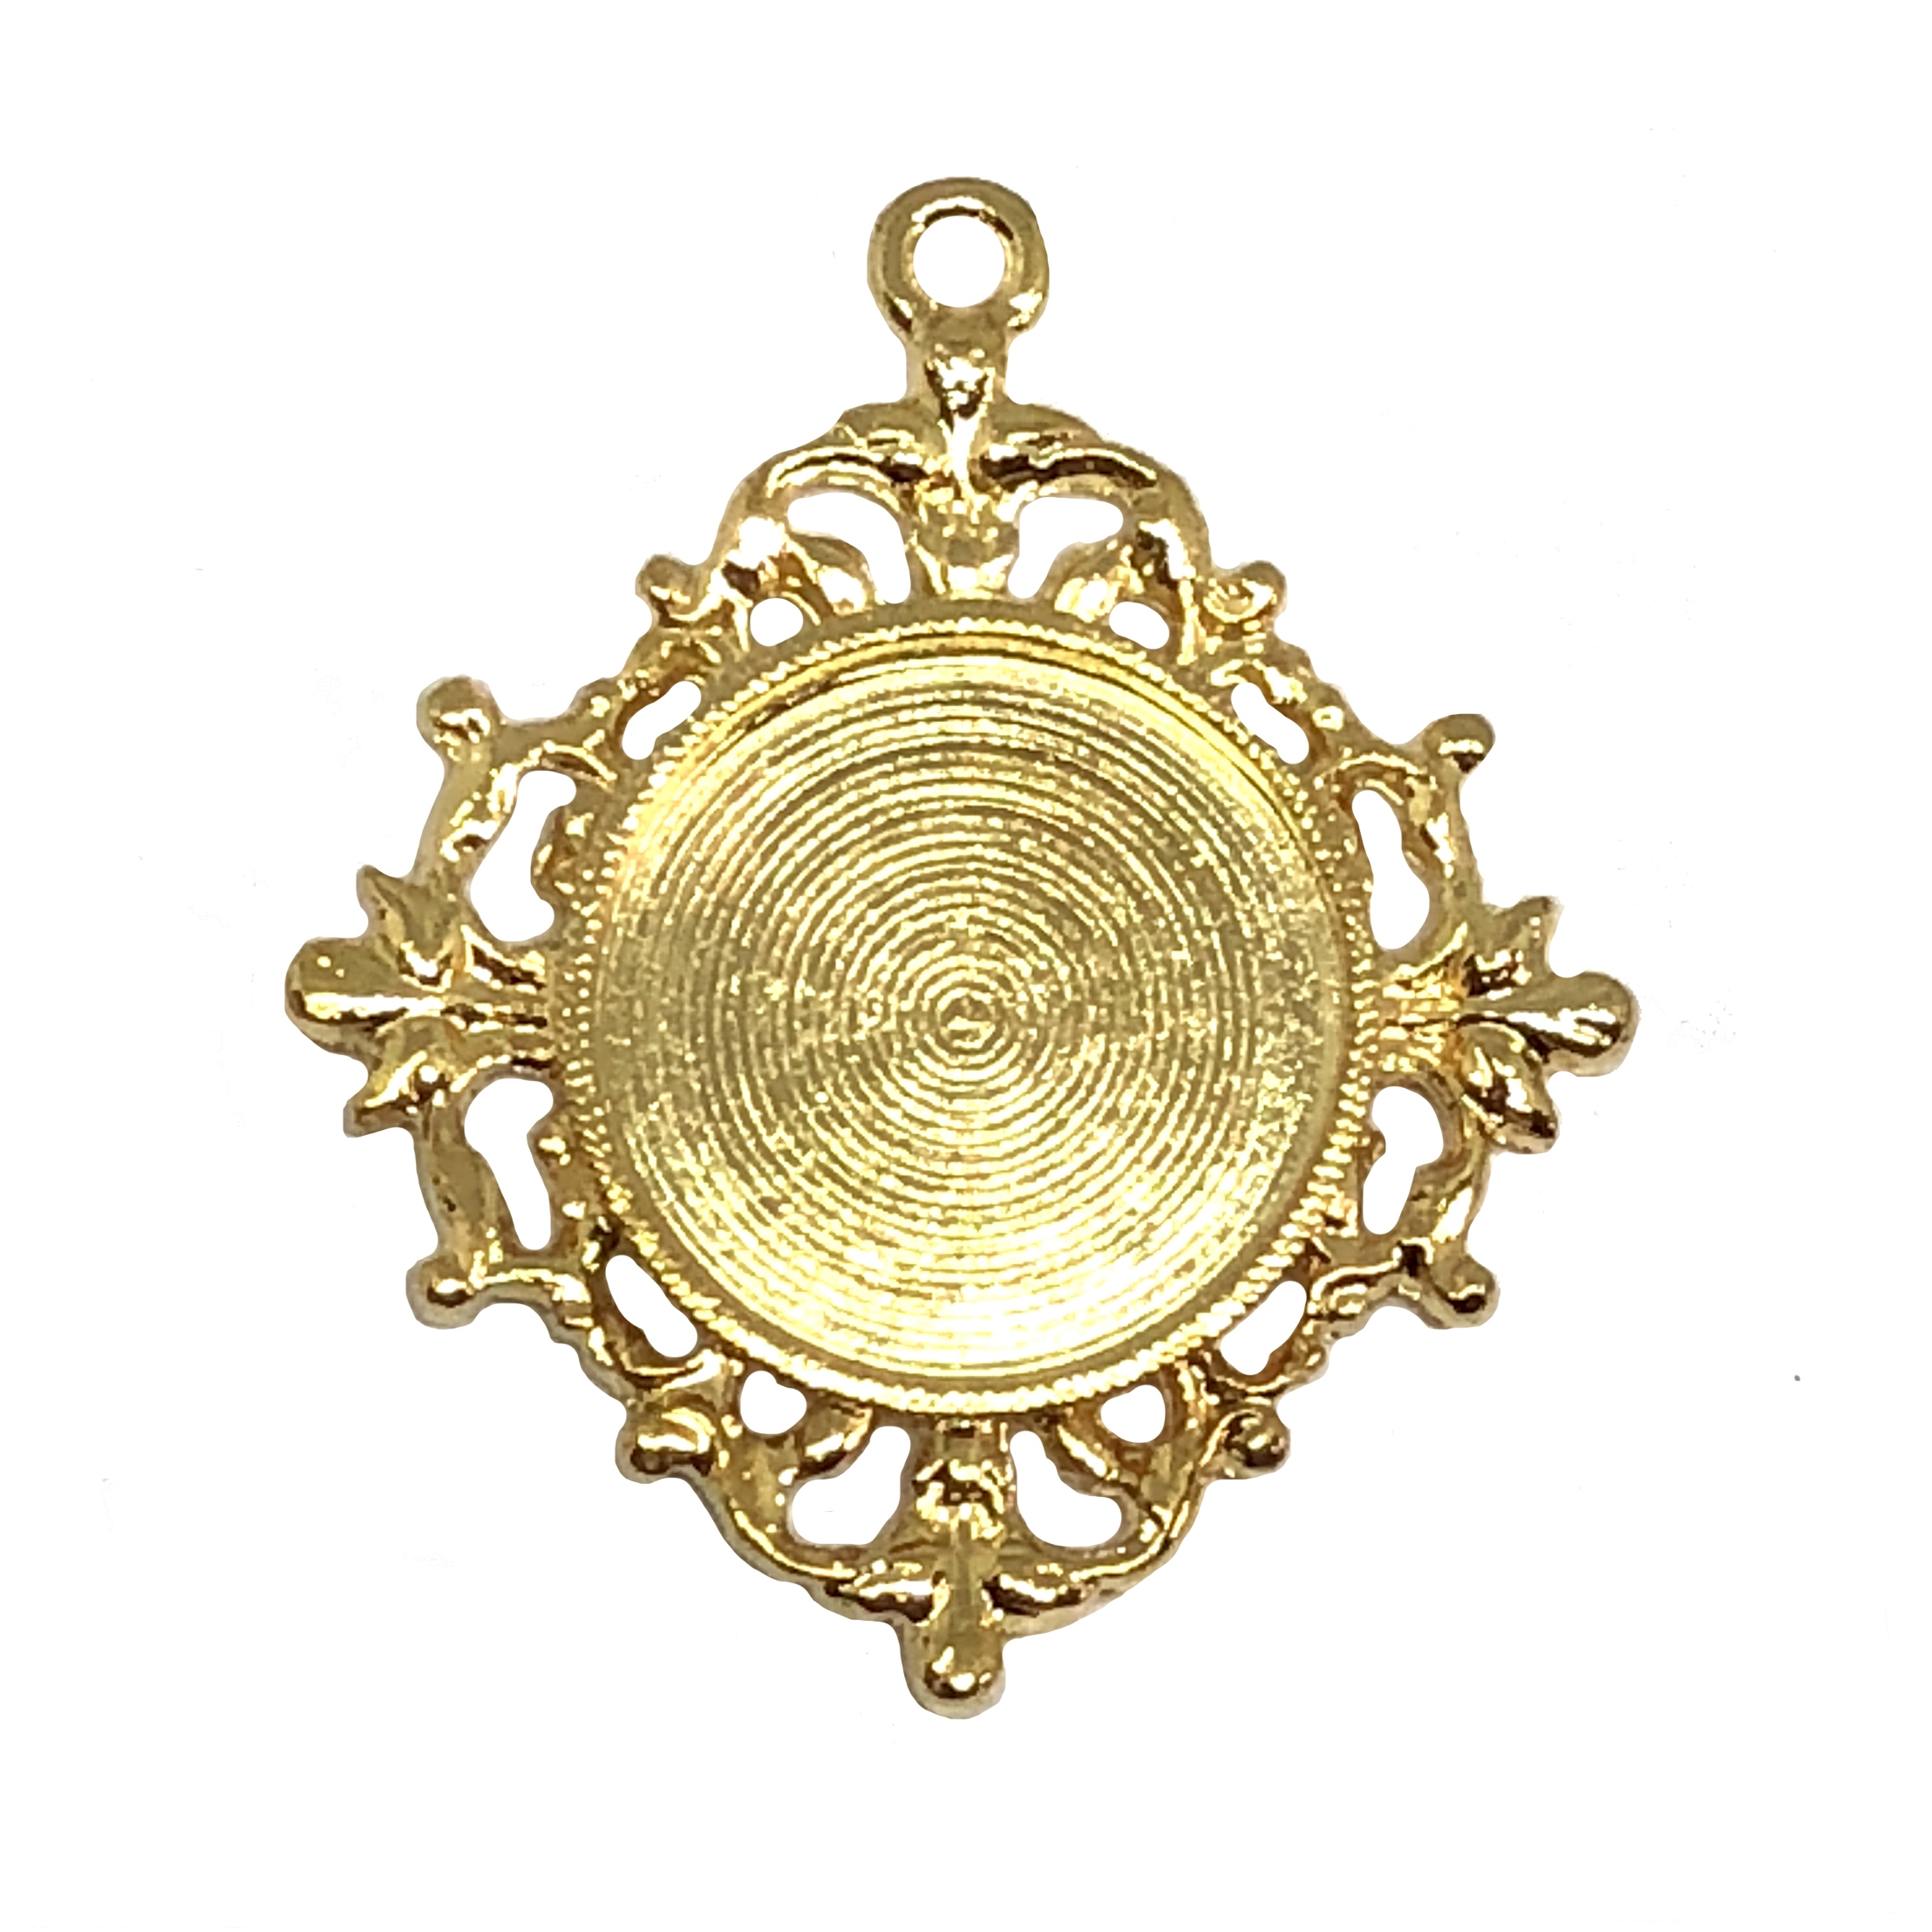 Victorian pendant mount, 22K gold finish pewter, B'sue by 1928, jewelry pendant, pendant mount, mount, pendant, gold, lead free pewter, gold finish, US made, designer jewelry, vintage supplies, B'sue Boutiques, 18mm mount, stone or cameo pendant, 08511